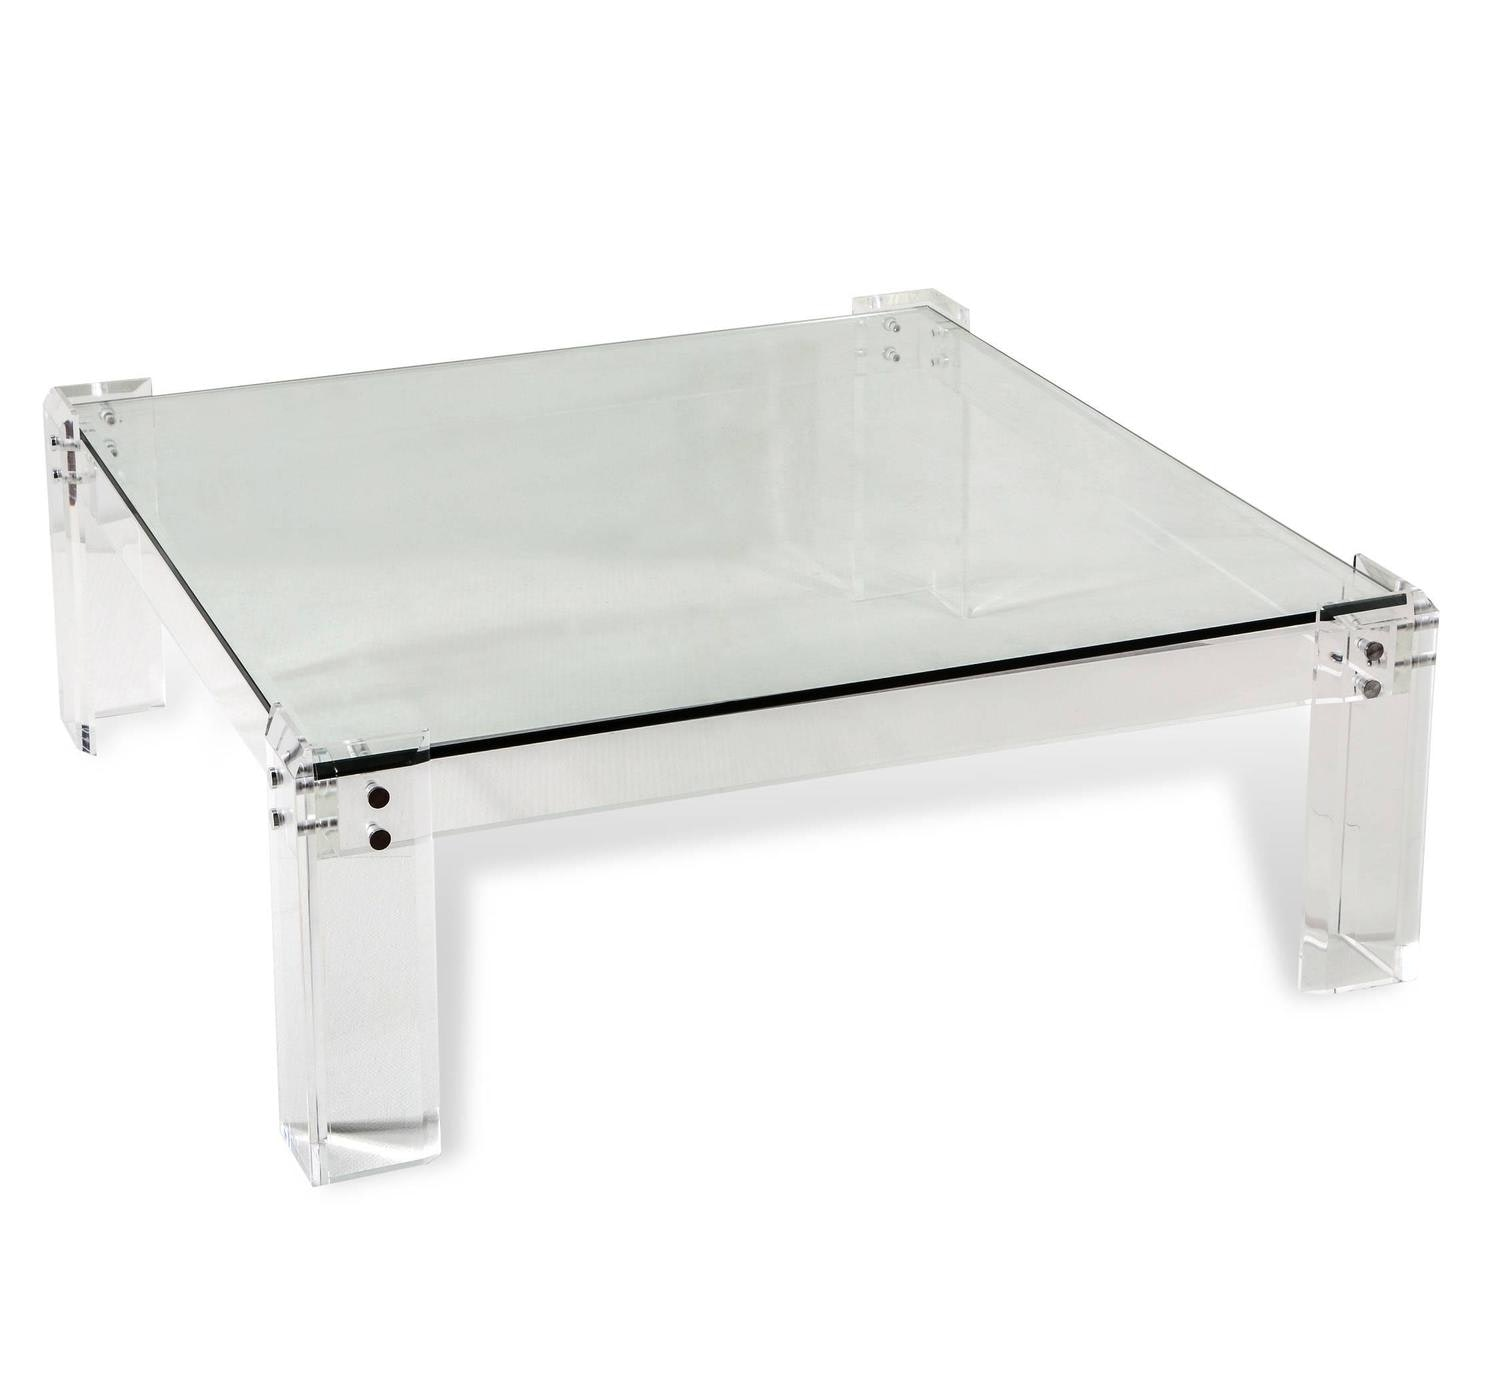 plexiglass coffee table contemporary cocktail tables english country home furniture end dering hall affordable rustic inch high console round glass swivel ashley medium hariston